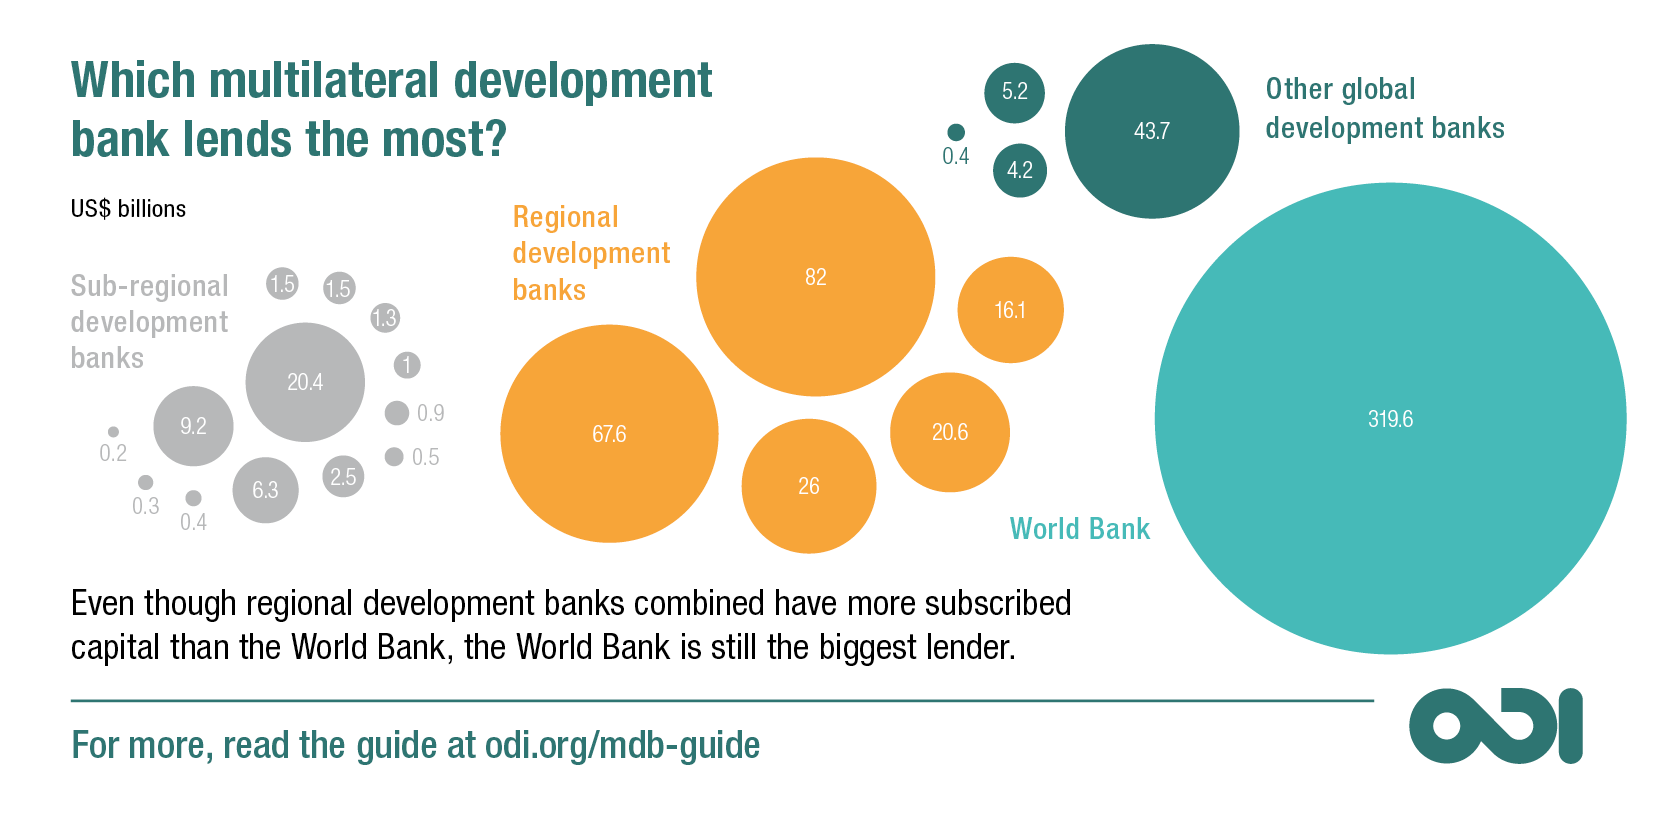 Which multilateral development bank lends the most?